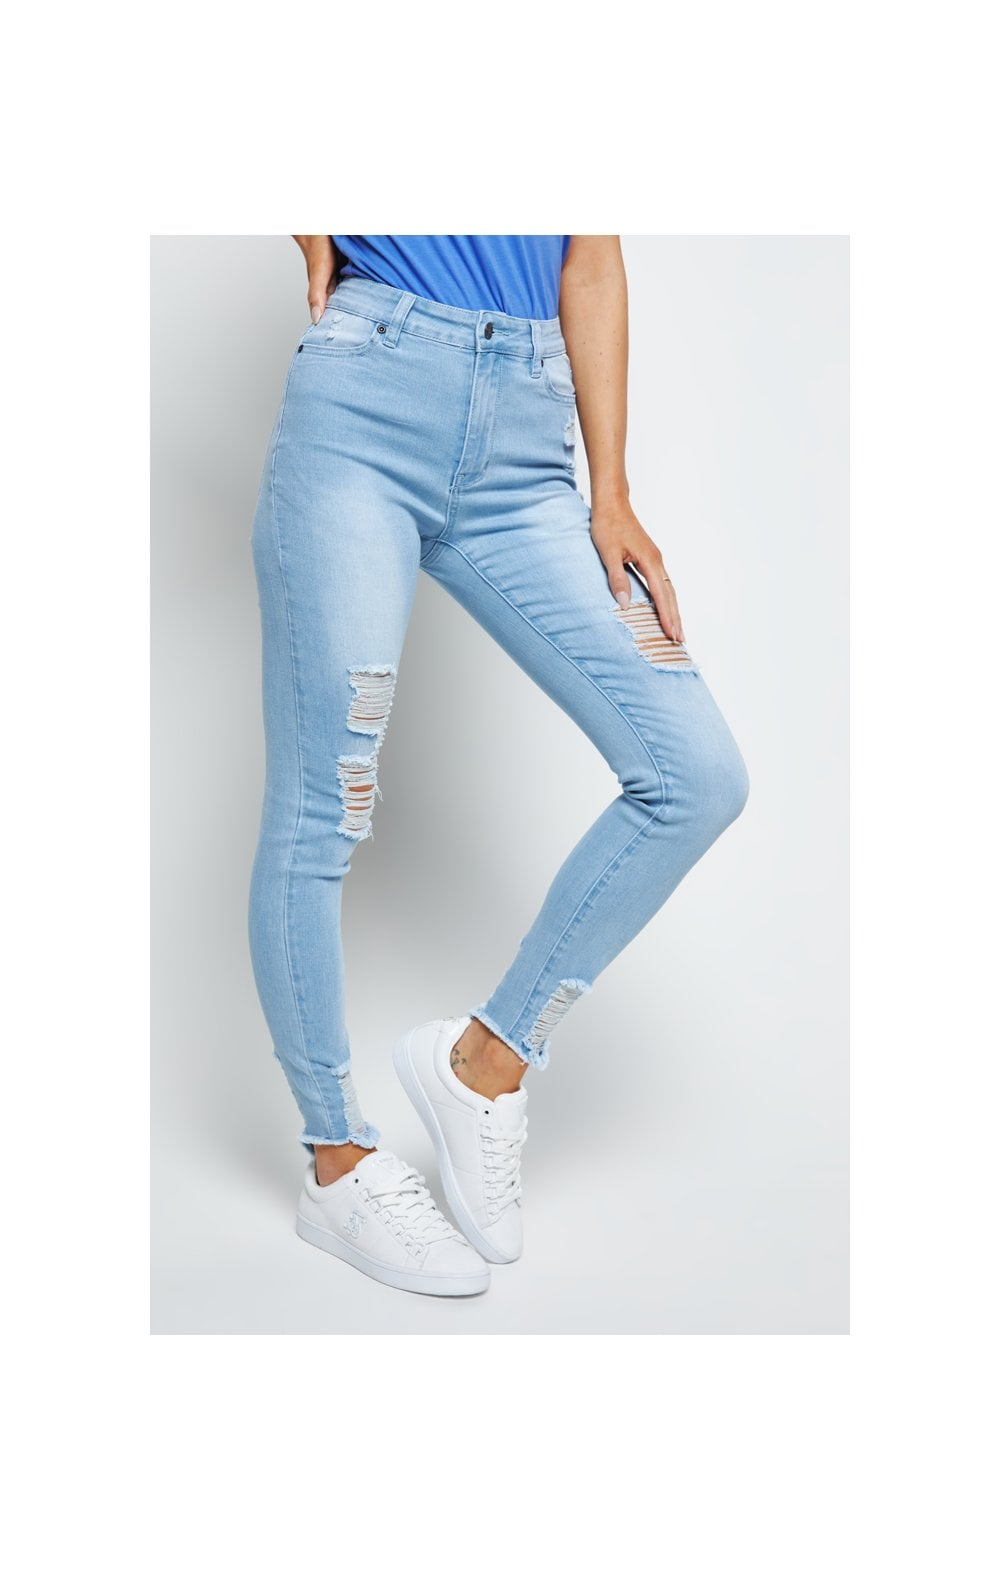 SikSilk Distressed Skinny Jeans - Ice Blue